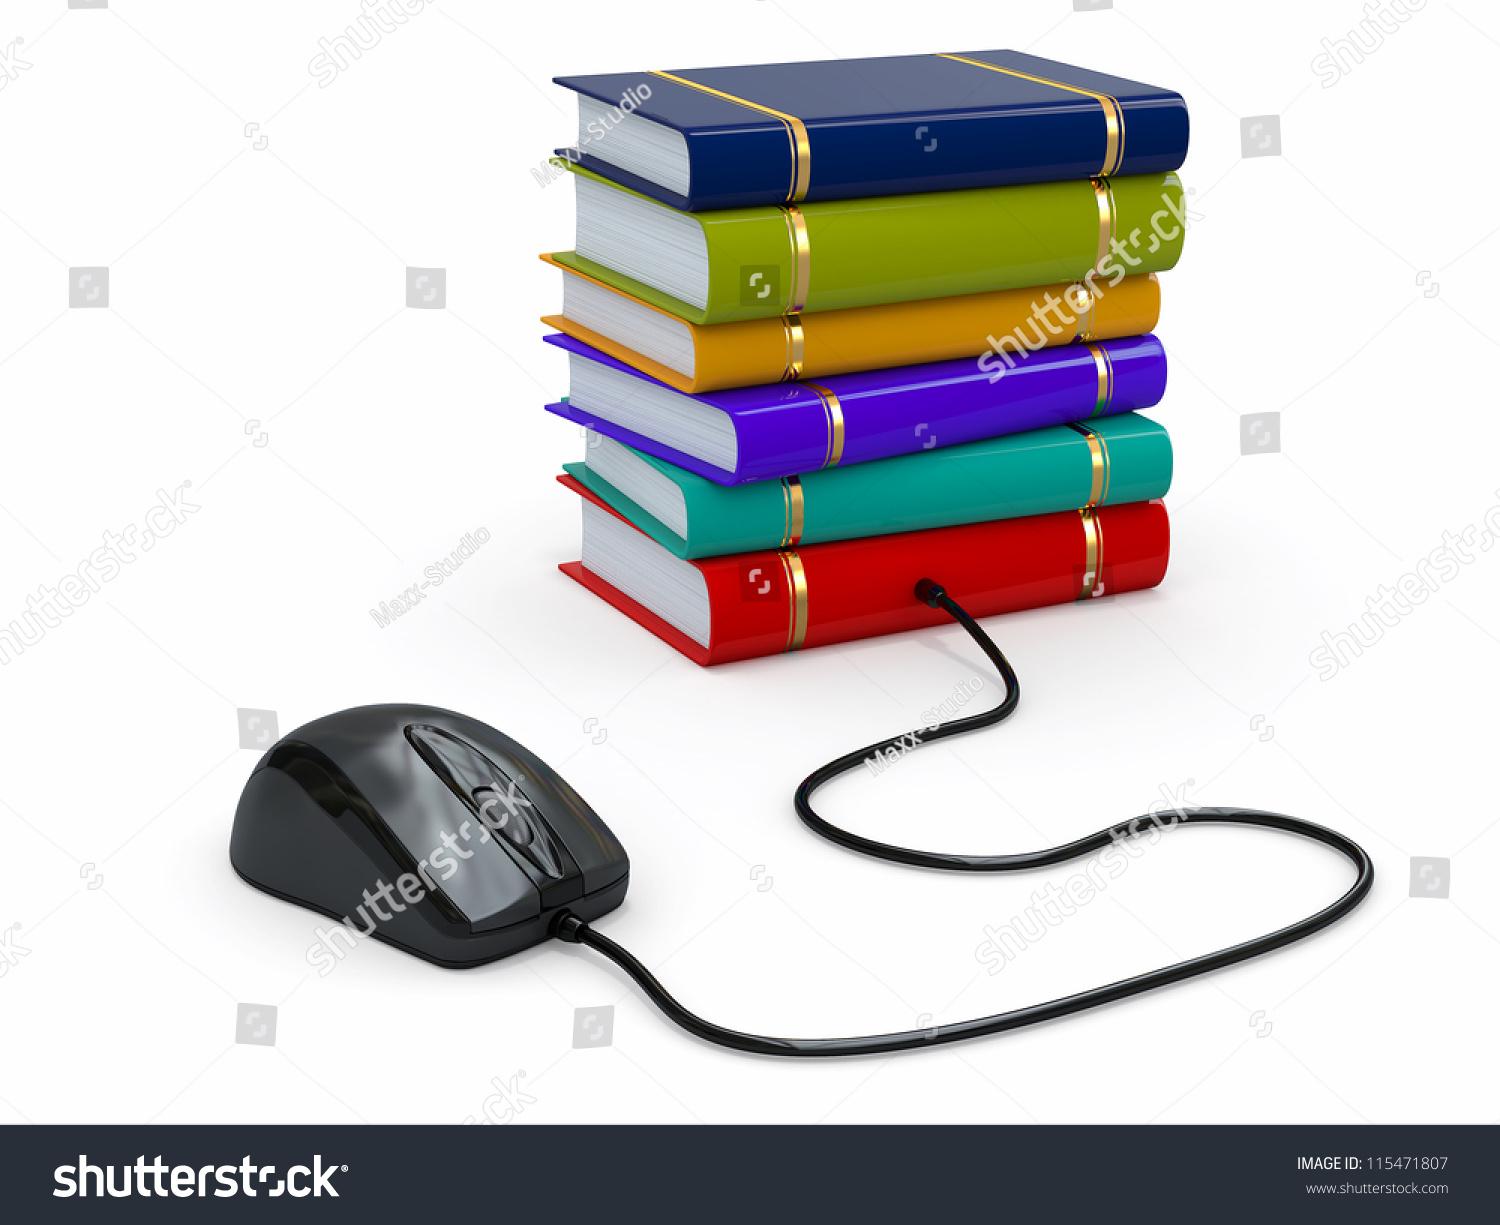 Internet Education Books Computer Mouse 3 D Stock Illustration Diagram Part In This And 3d